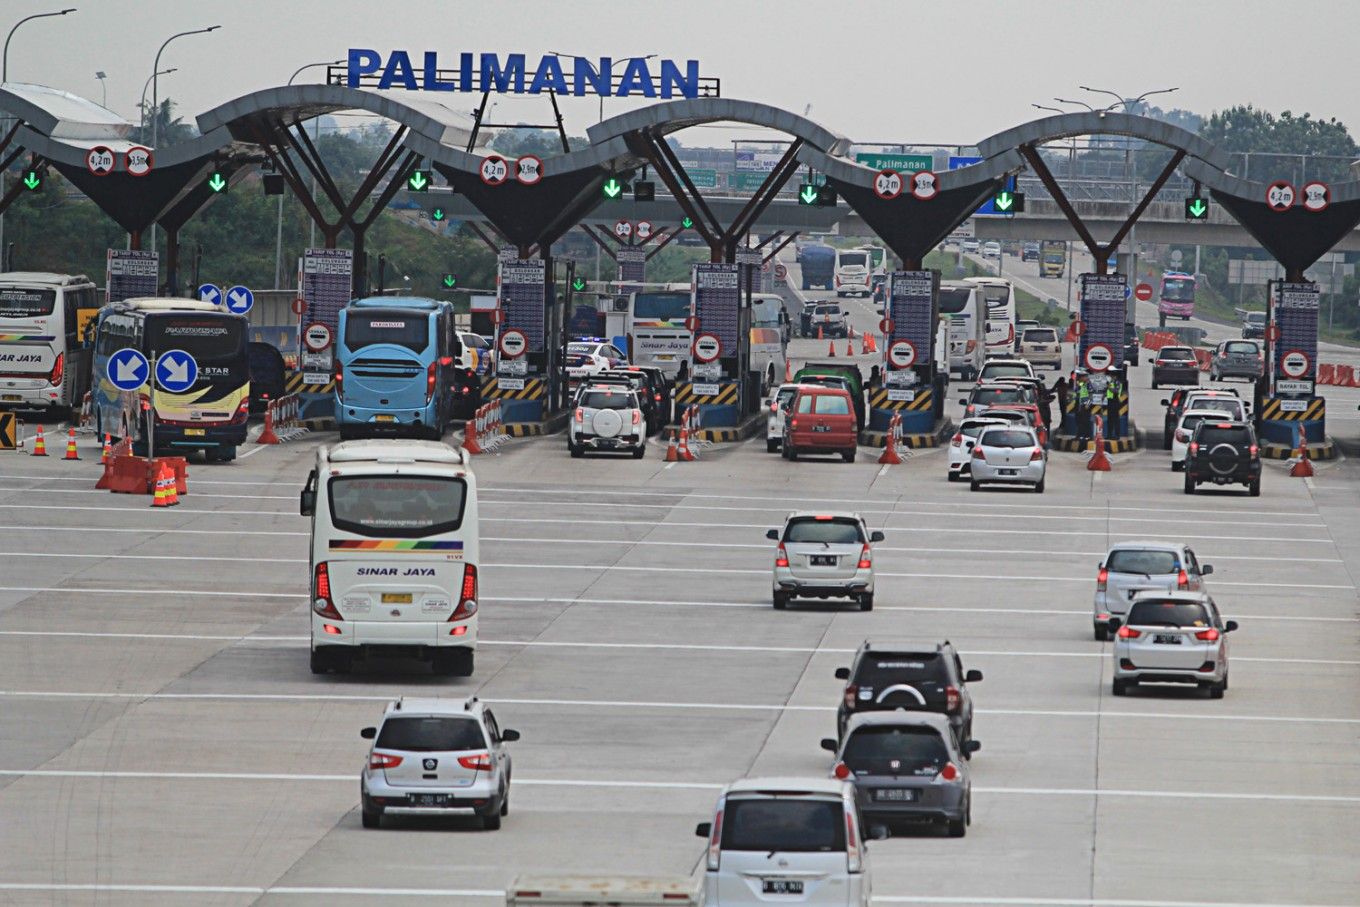 Astra subsidiary to build Cipali toll road extension to Kertajati in 2020